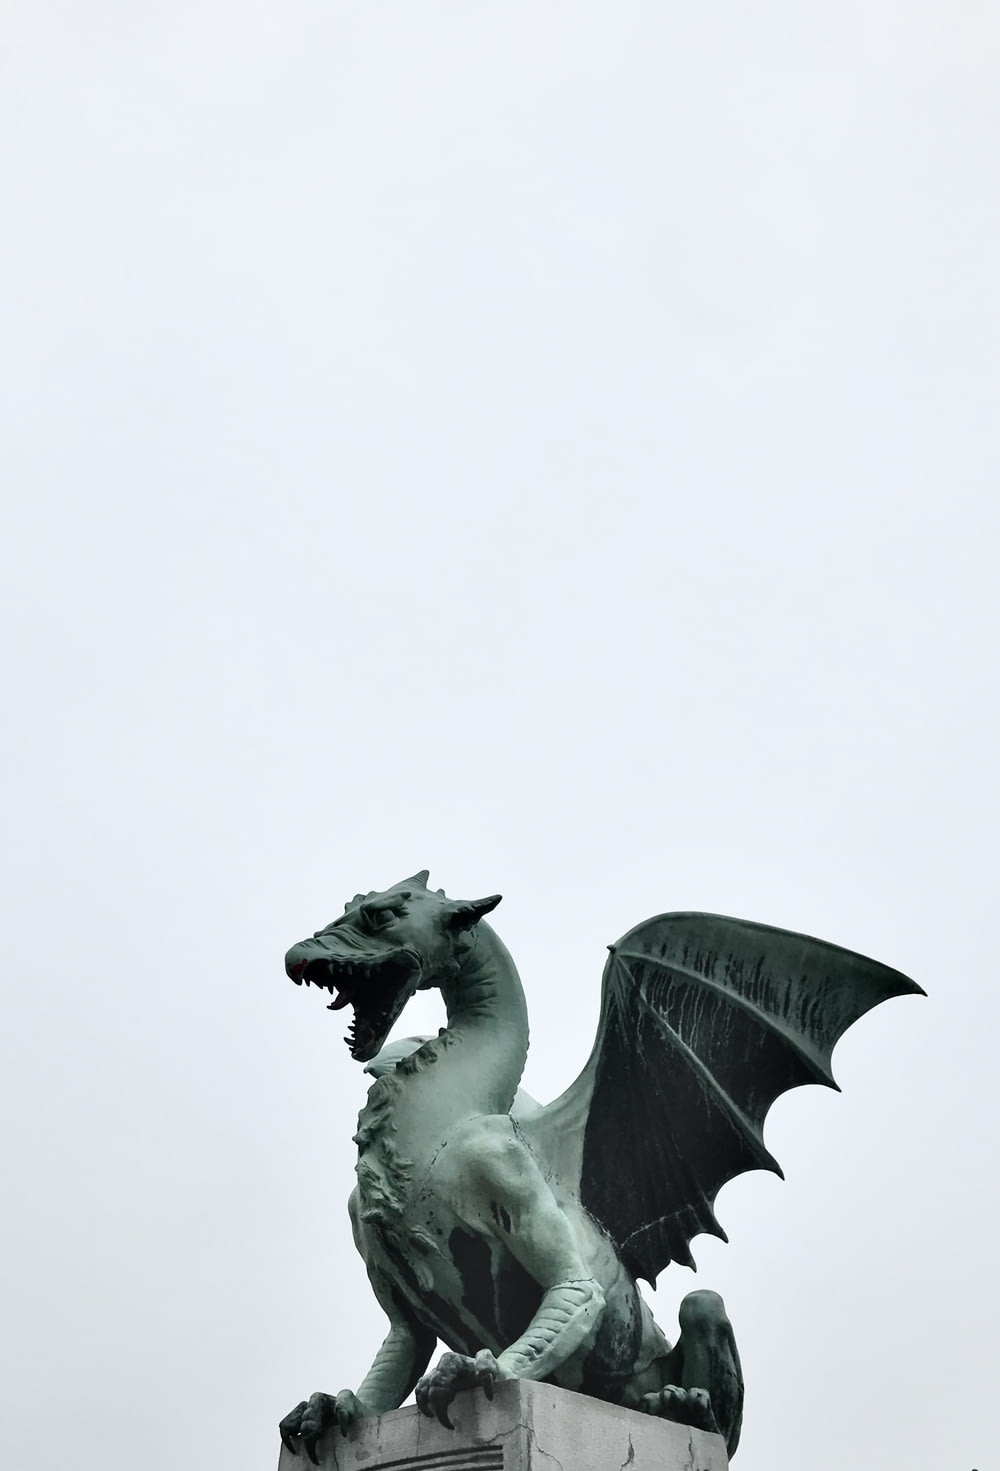 white horse statue in close up photography